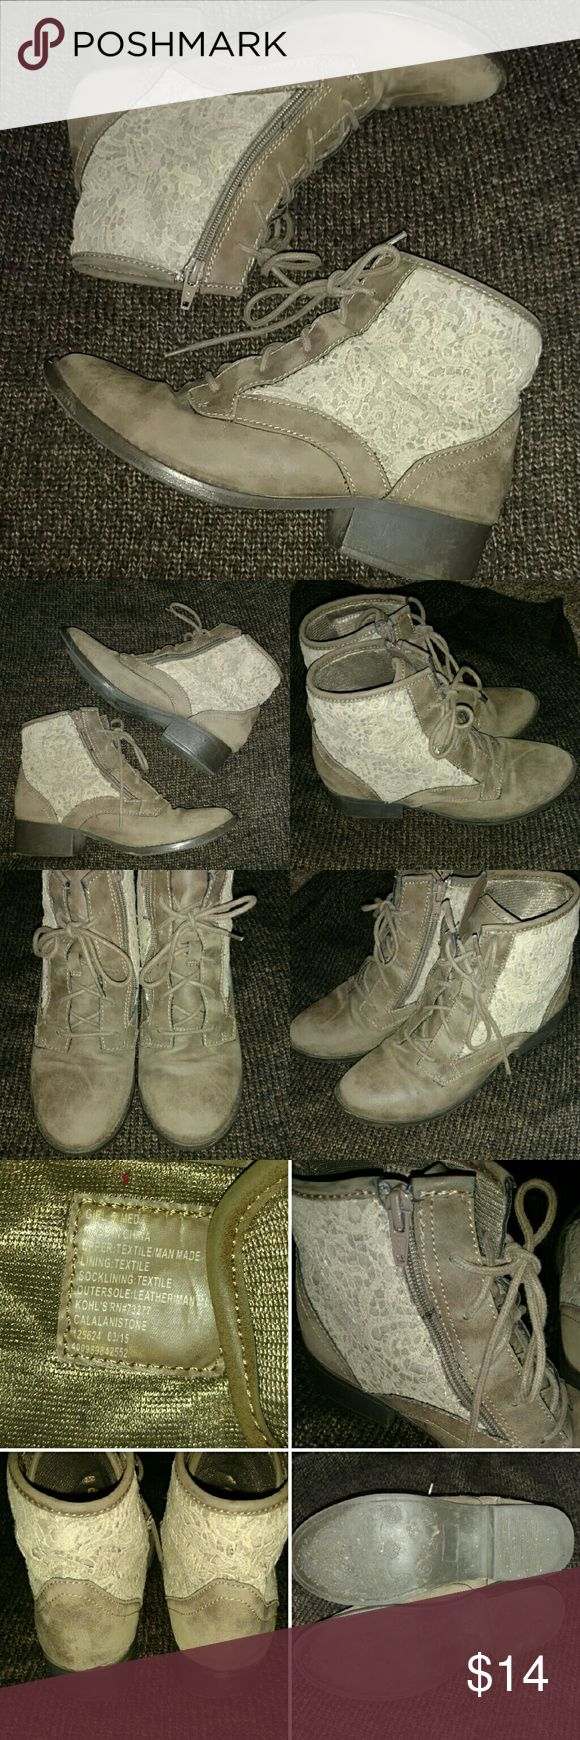 ADORABLE LADIES TAN CREAM LACE BOOTIES ADORABLE LADIES TAN CREAM LACE ANKLE BOOT BOOTIES Tag says size girls 5 but fit like ladies 6.5  Leather like material. Very soft. Loose around foot makes for perfect wear with wool socks. Soles are rubber.   No trades Shoes Ankle Boots & Booties